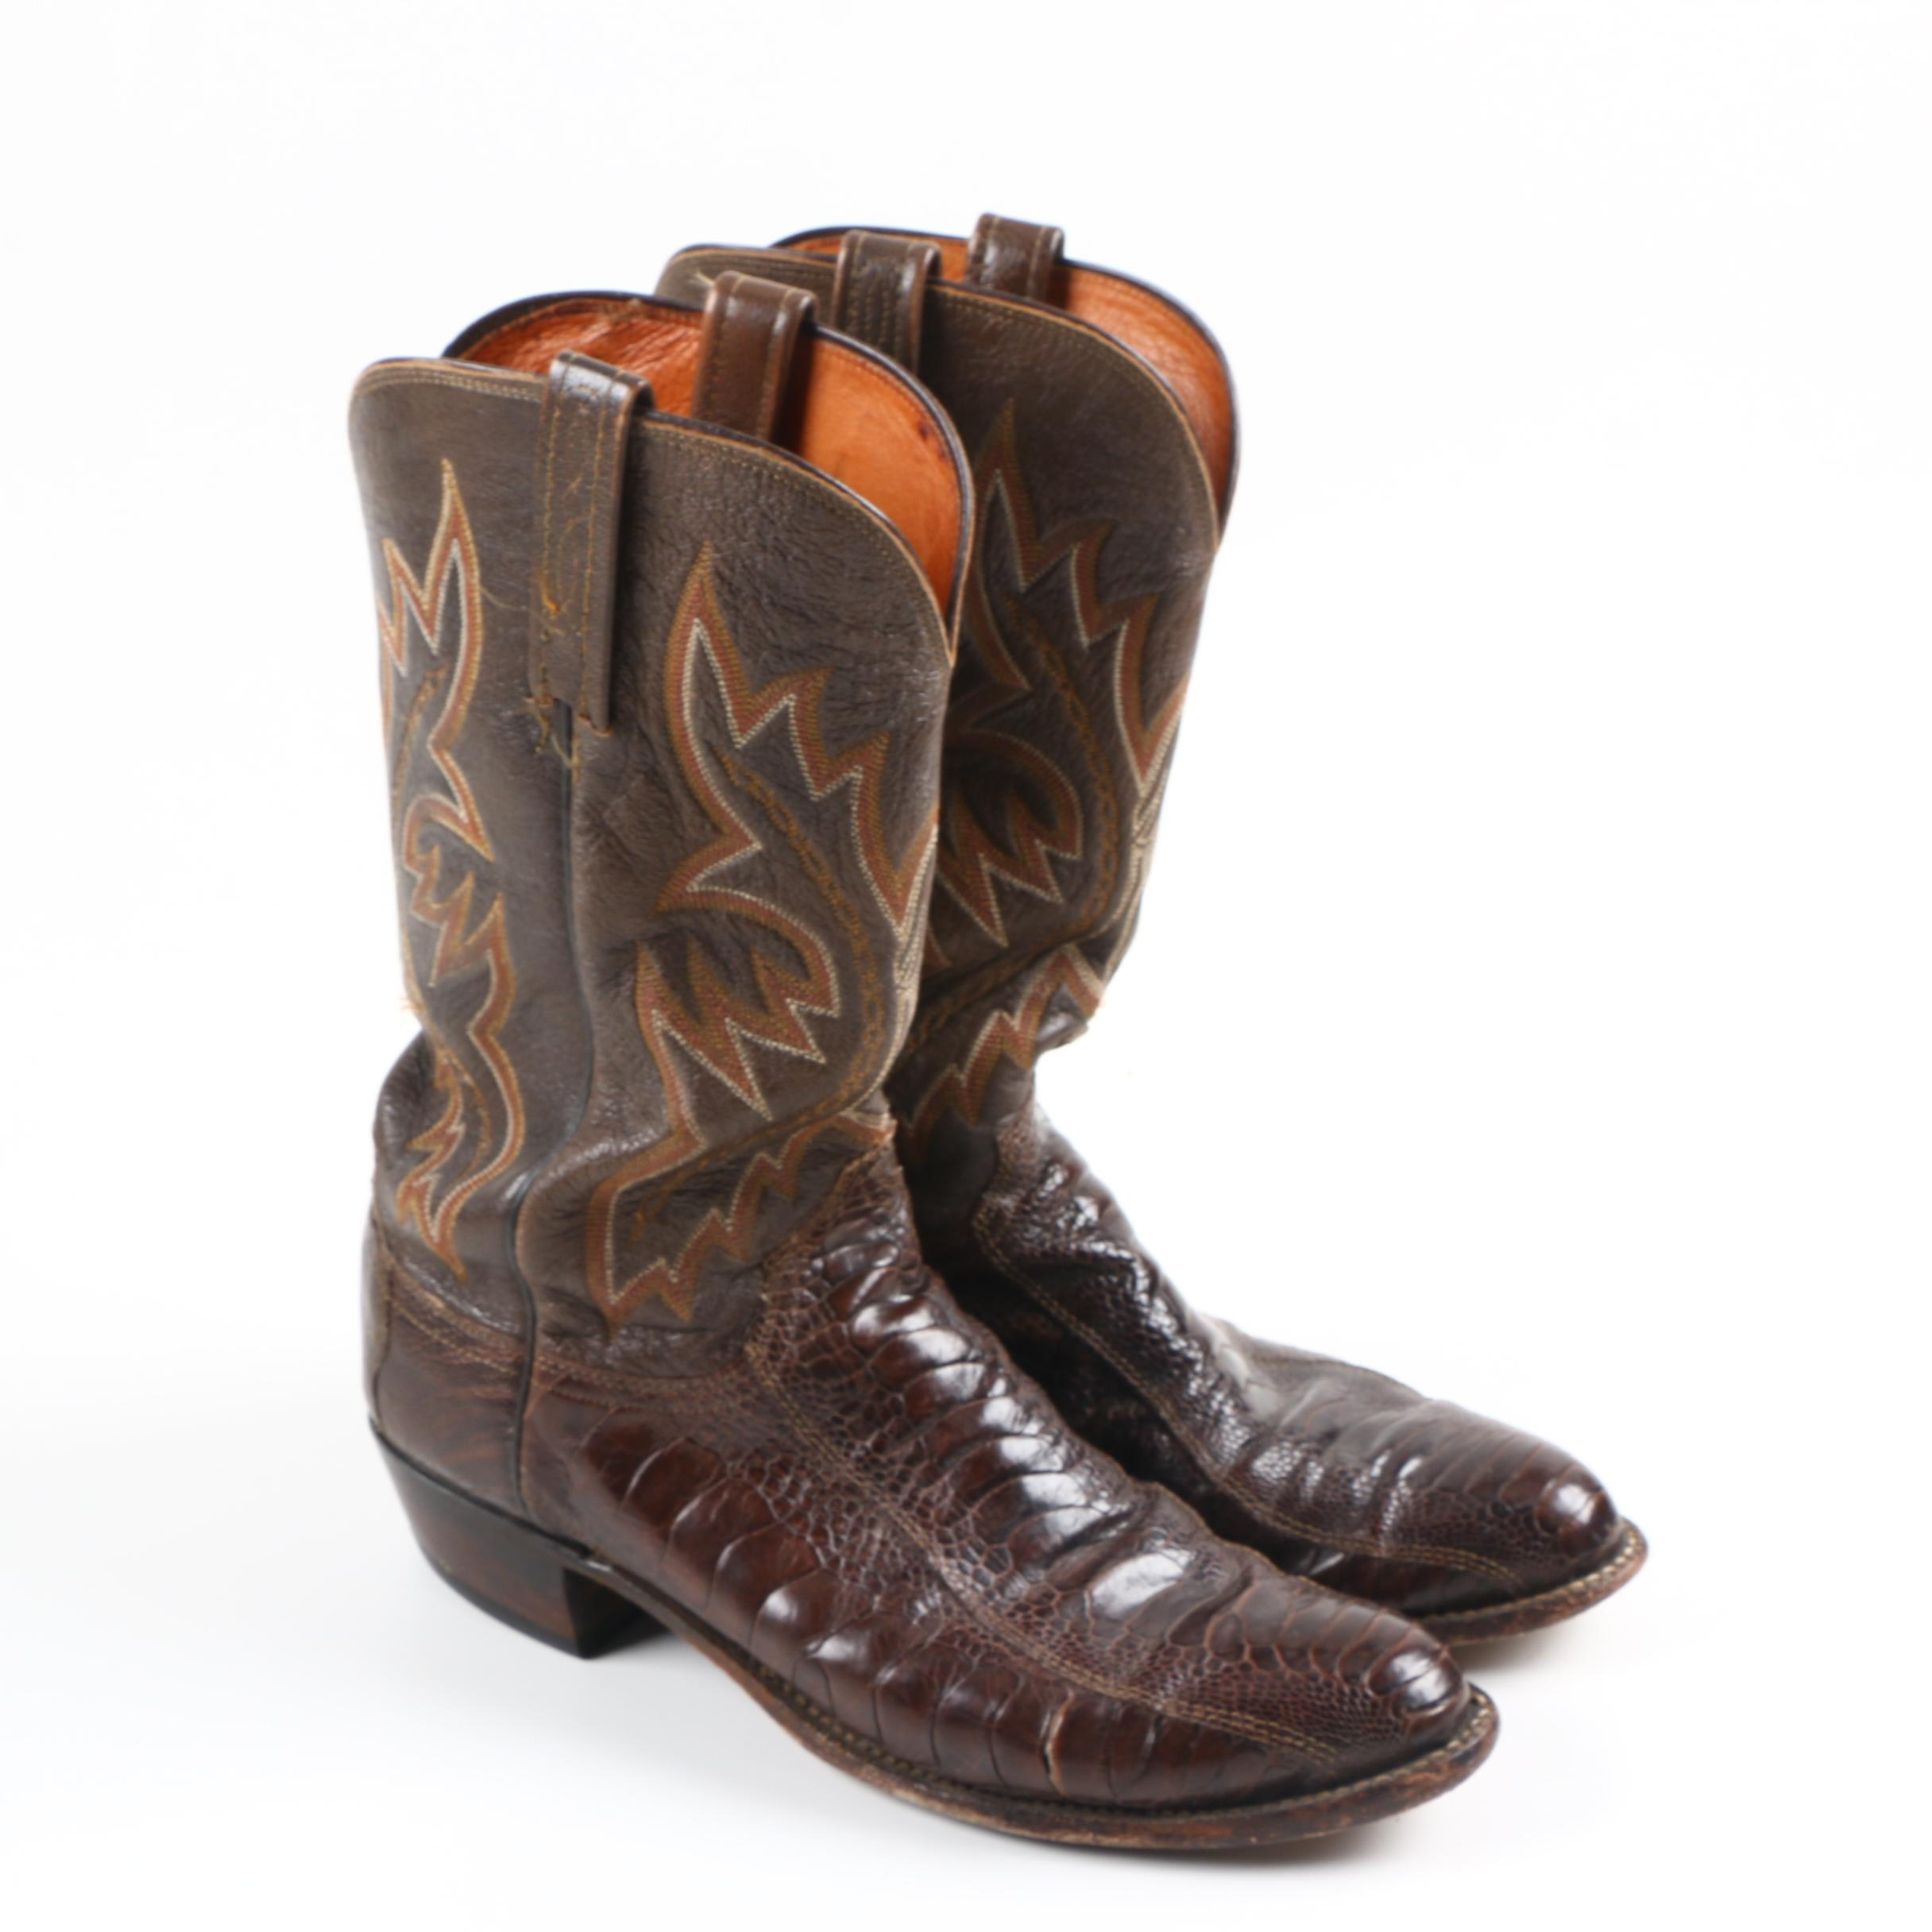 1883 by Lucchese Men's Brown Leather Cowboy Boots